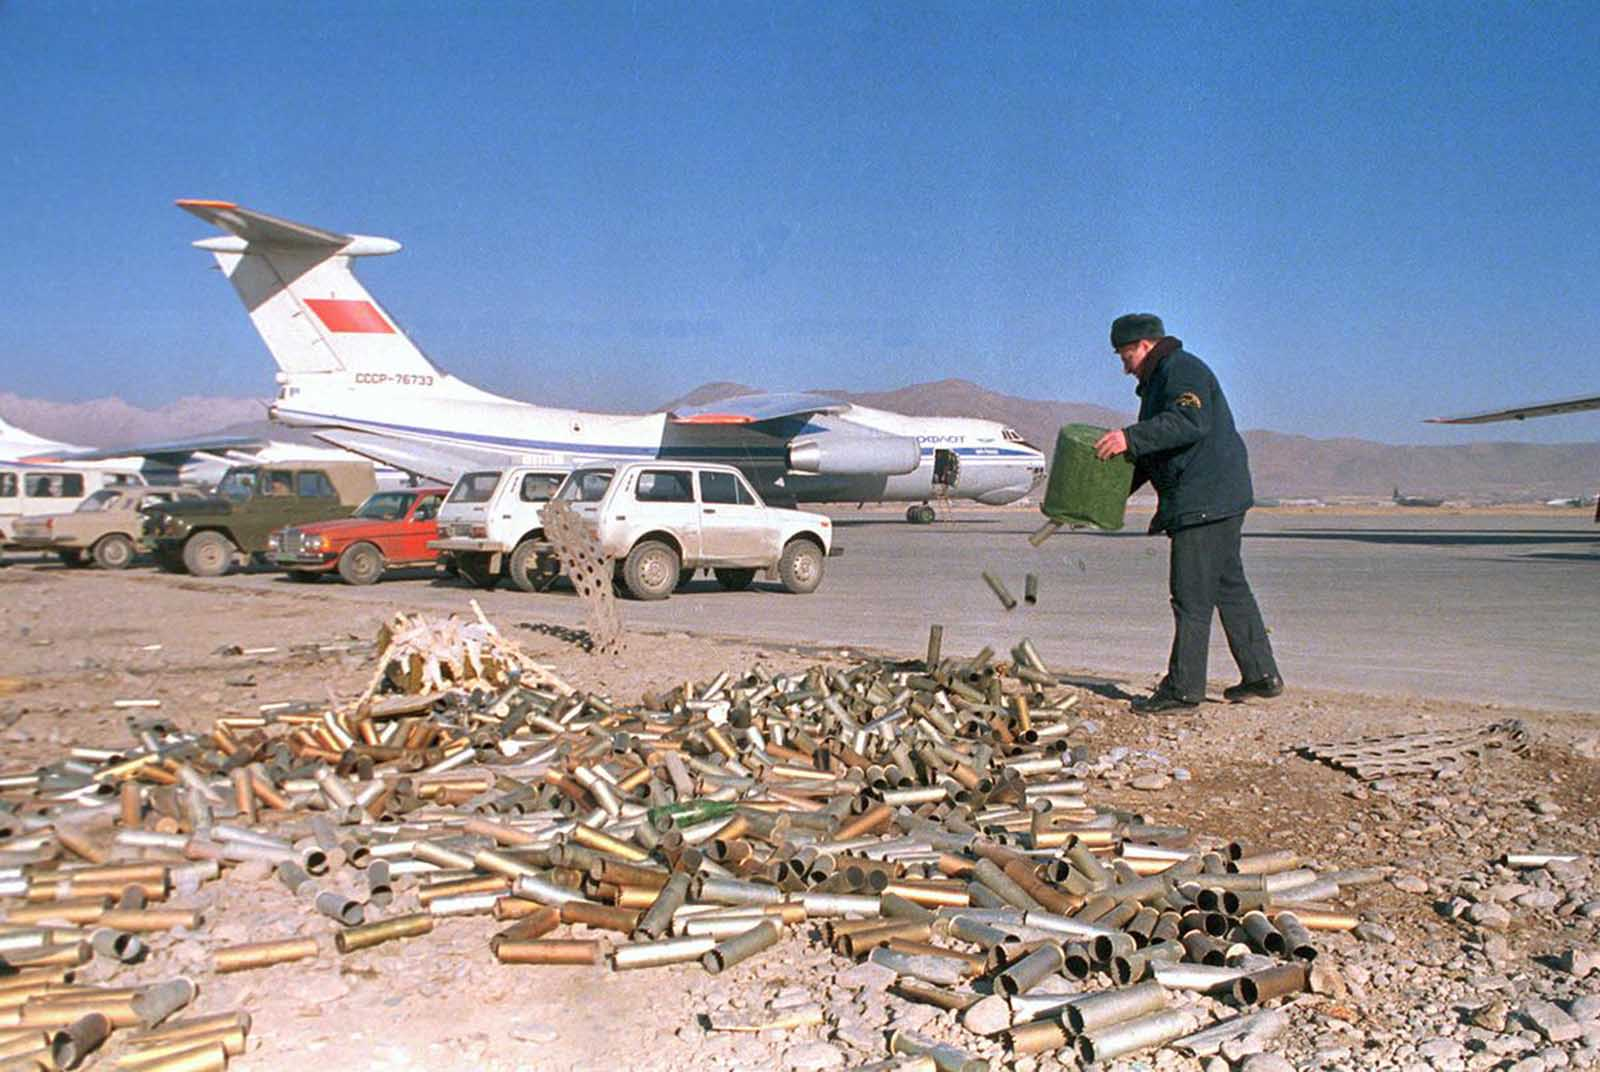 A Soviet air force technician empties a bucket of spent flare cartridges at the Kabul airbase on January 23, 1989.